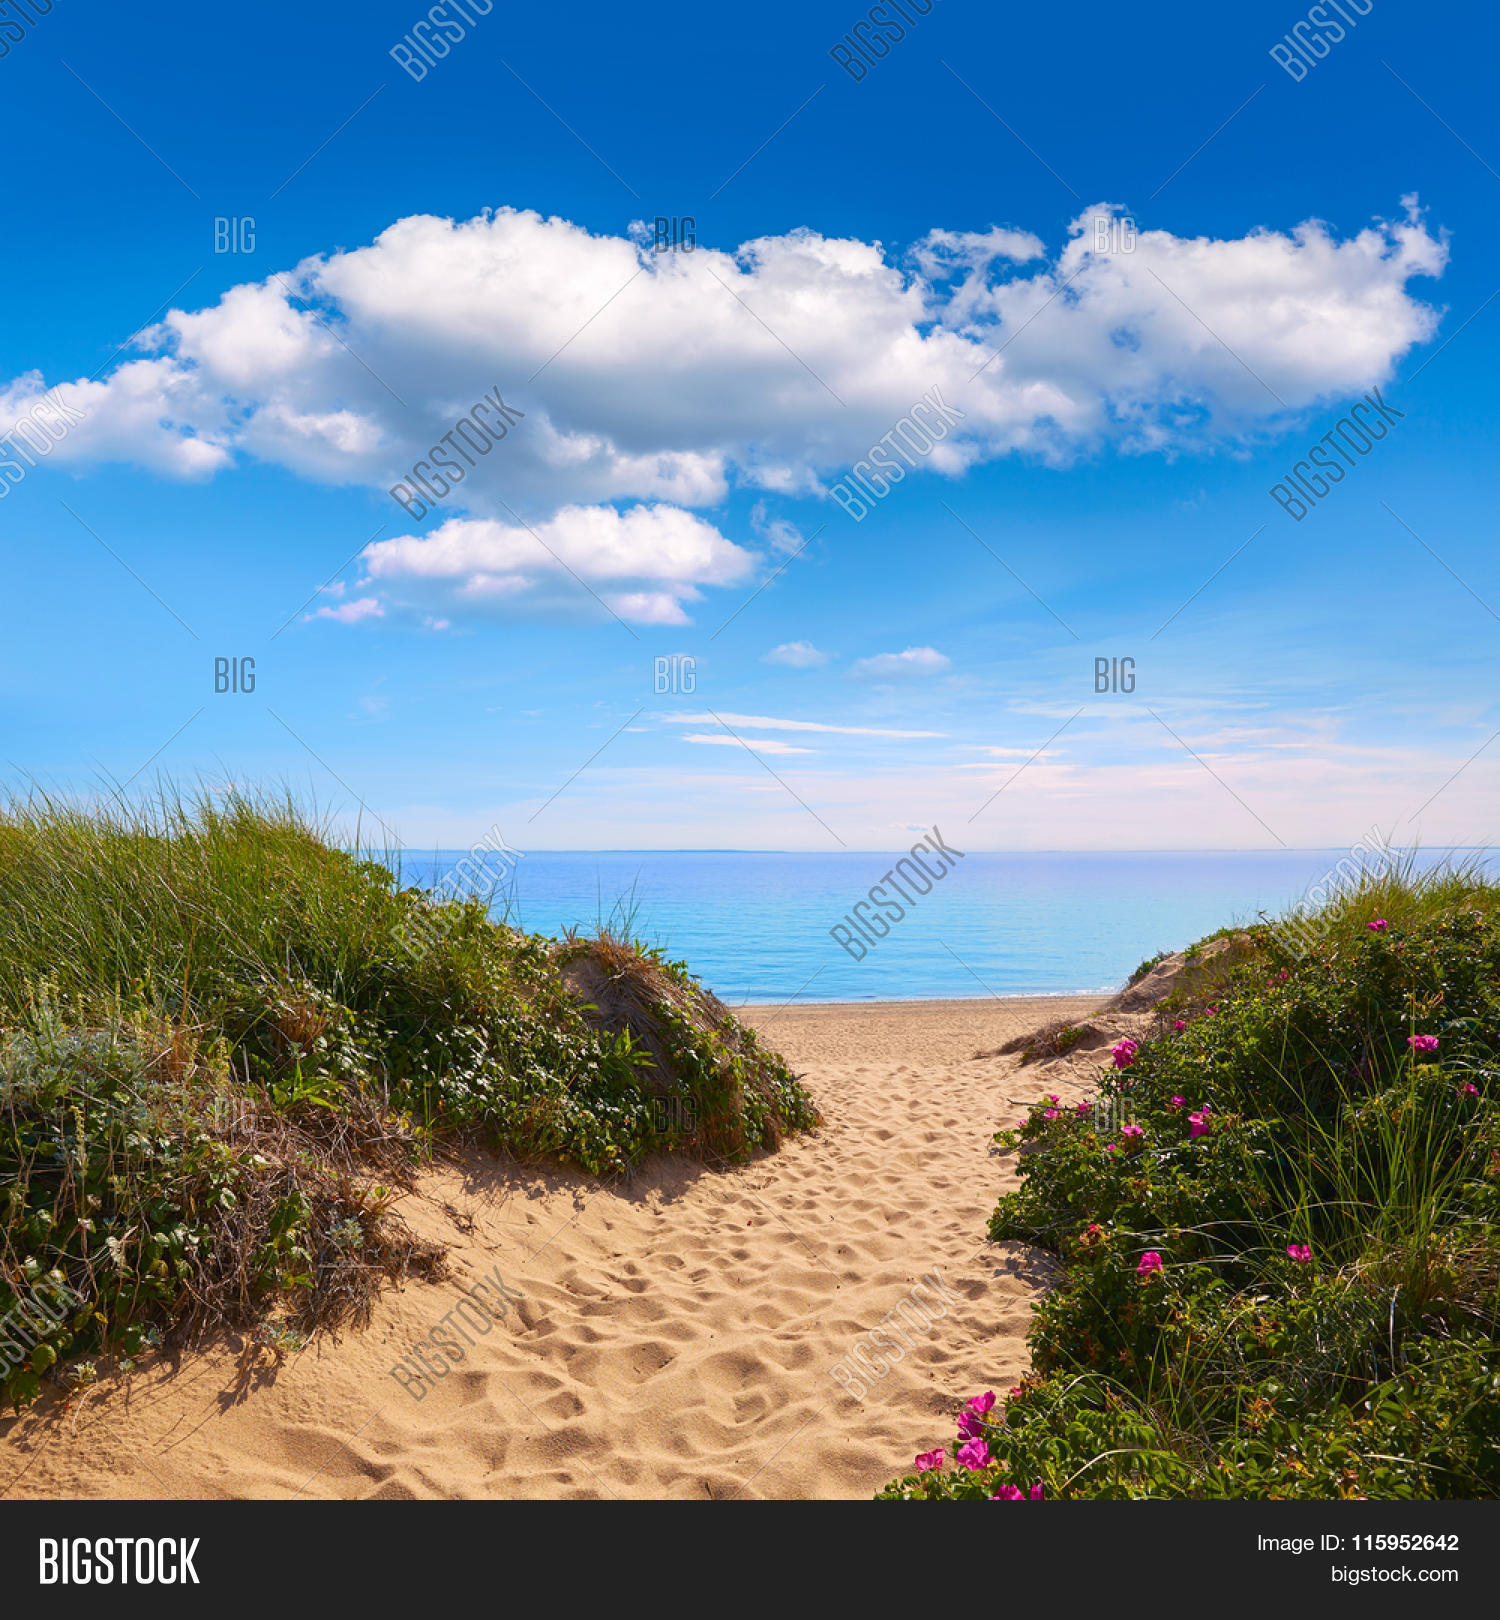 Cape cod herring cove beach image photo bigstock for Cove cape cod